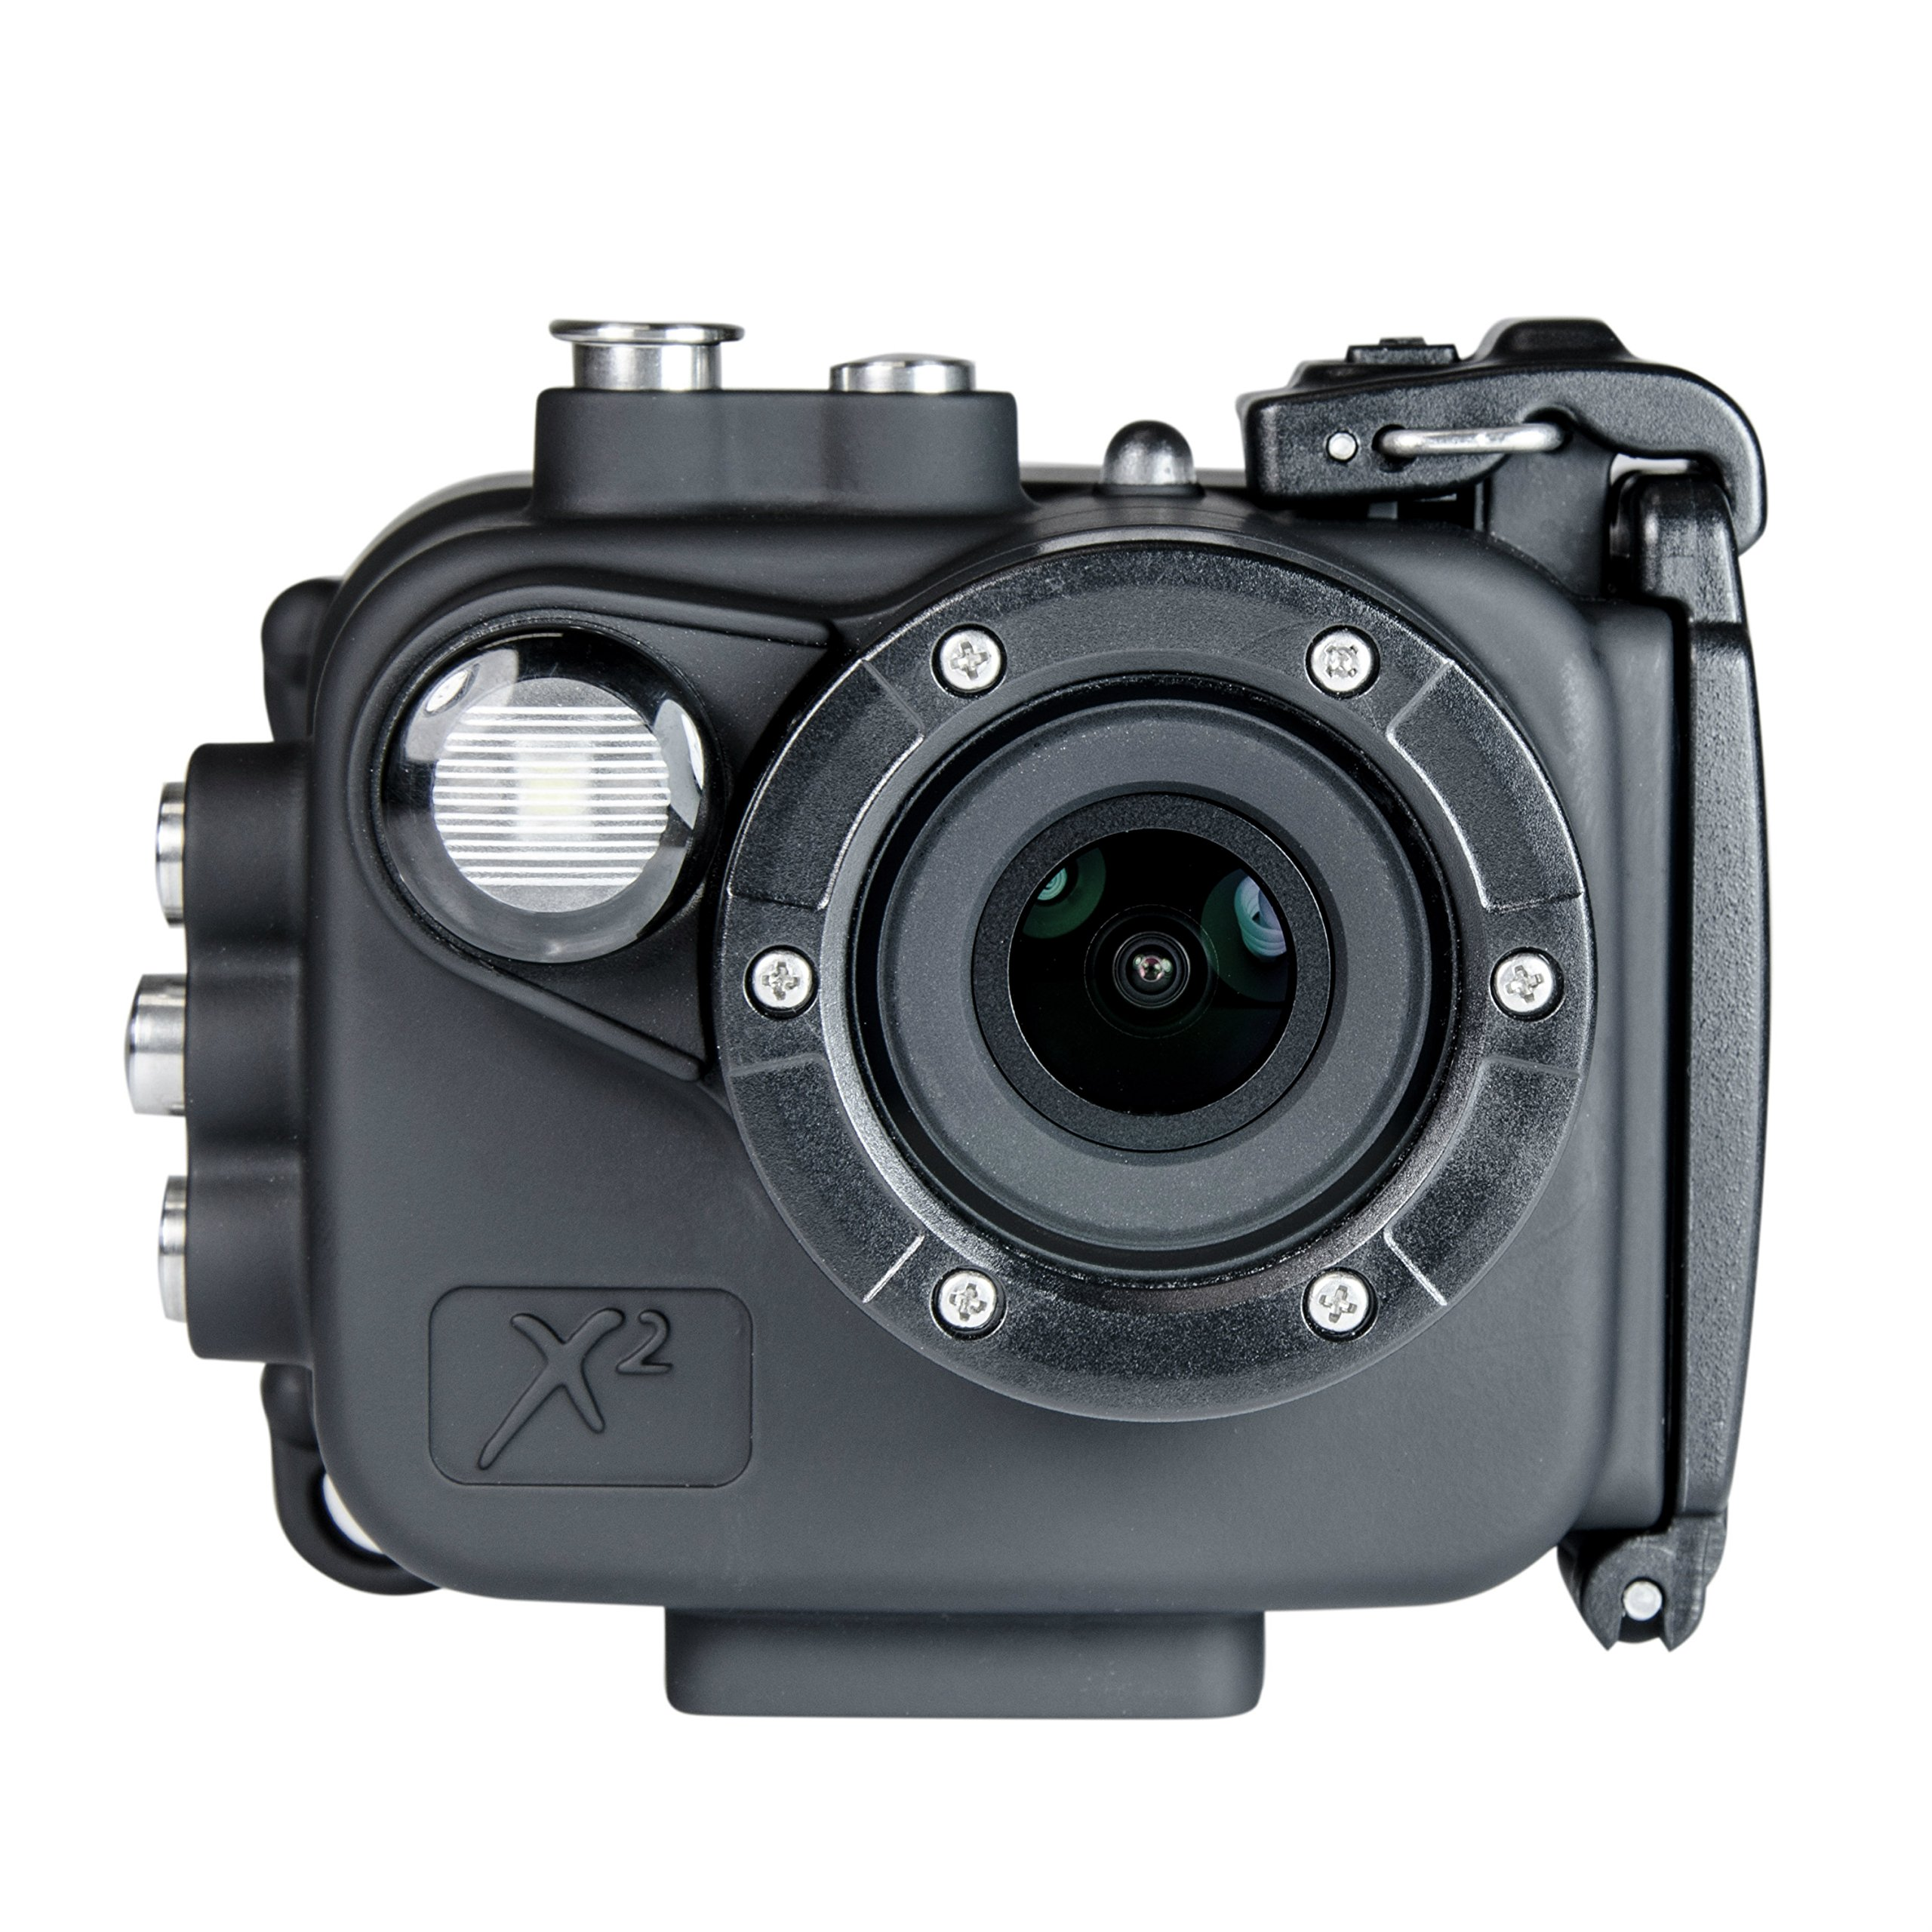 Intova X2 Waterproof 16MP Action Camera with Built-in 150-Lumen Light and WiFi by Intova